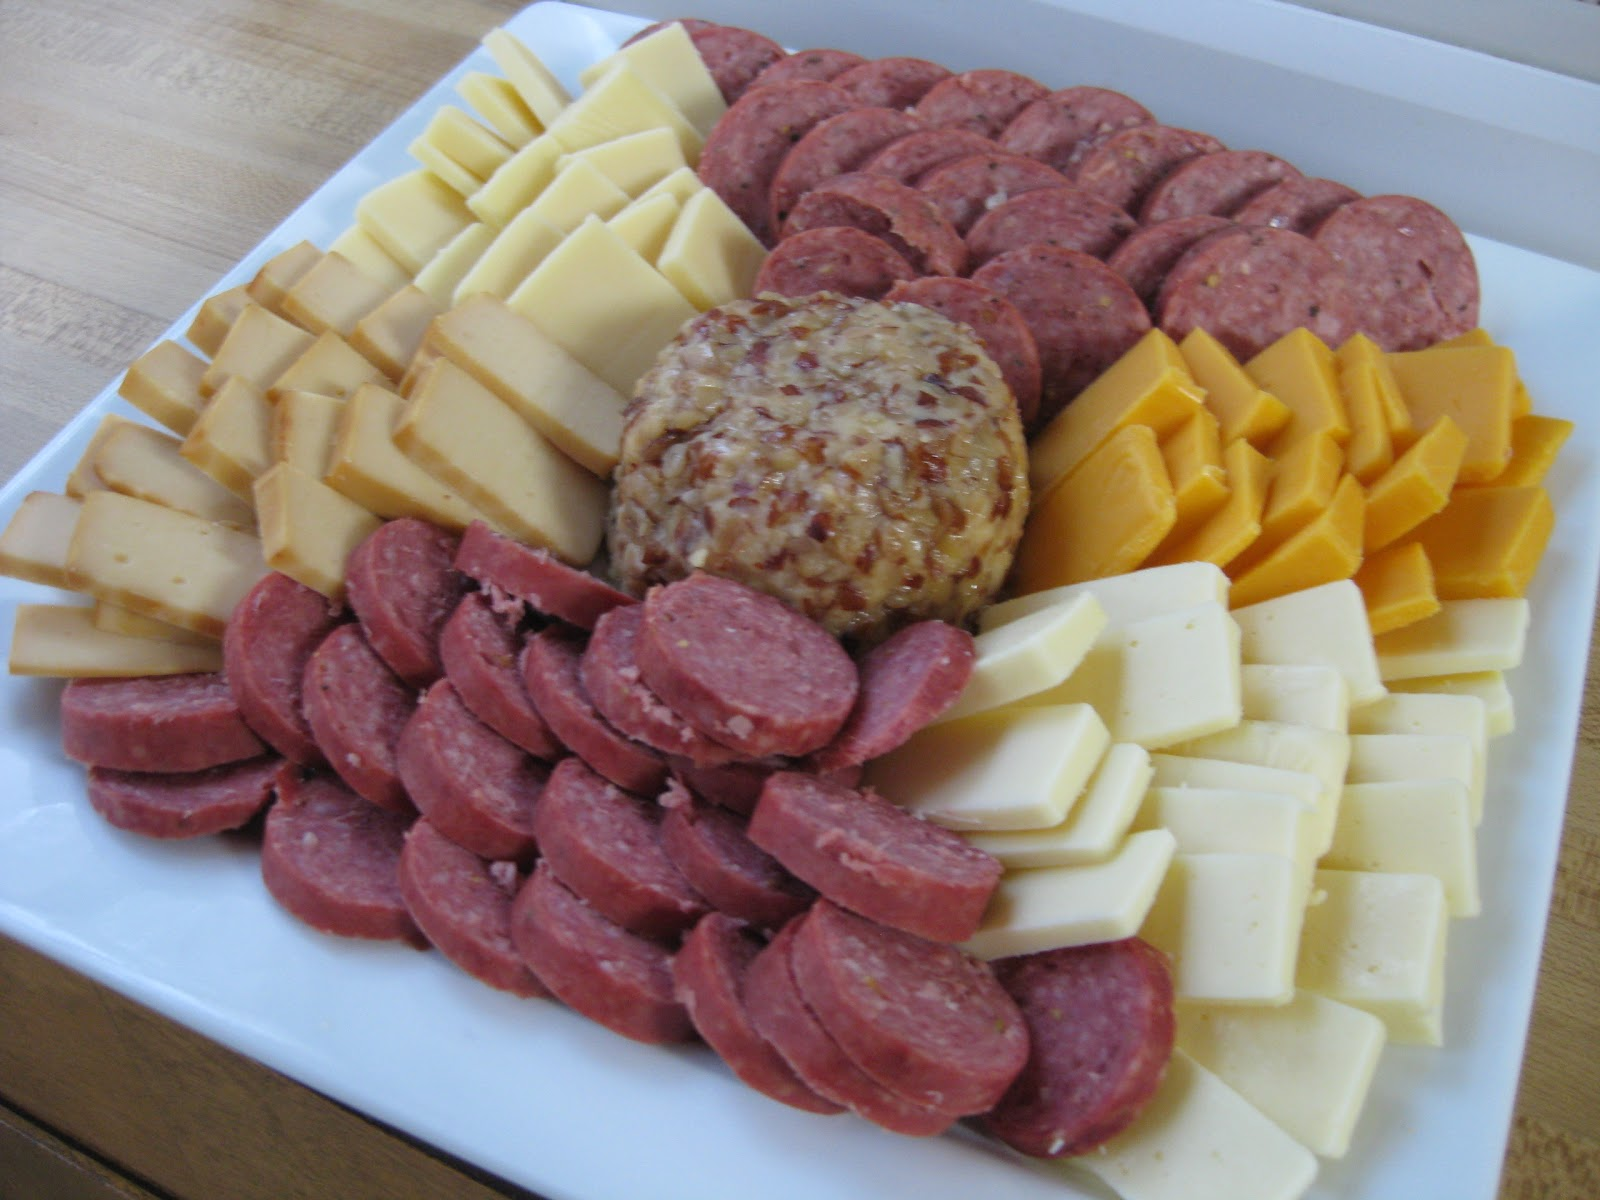 On each remaining side when two of the cheeses. I served the cranberry mustard and spicy mustard on the side along with water crackers. & Holiday Meat and Cheese Platter - Chow Bella Paleo